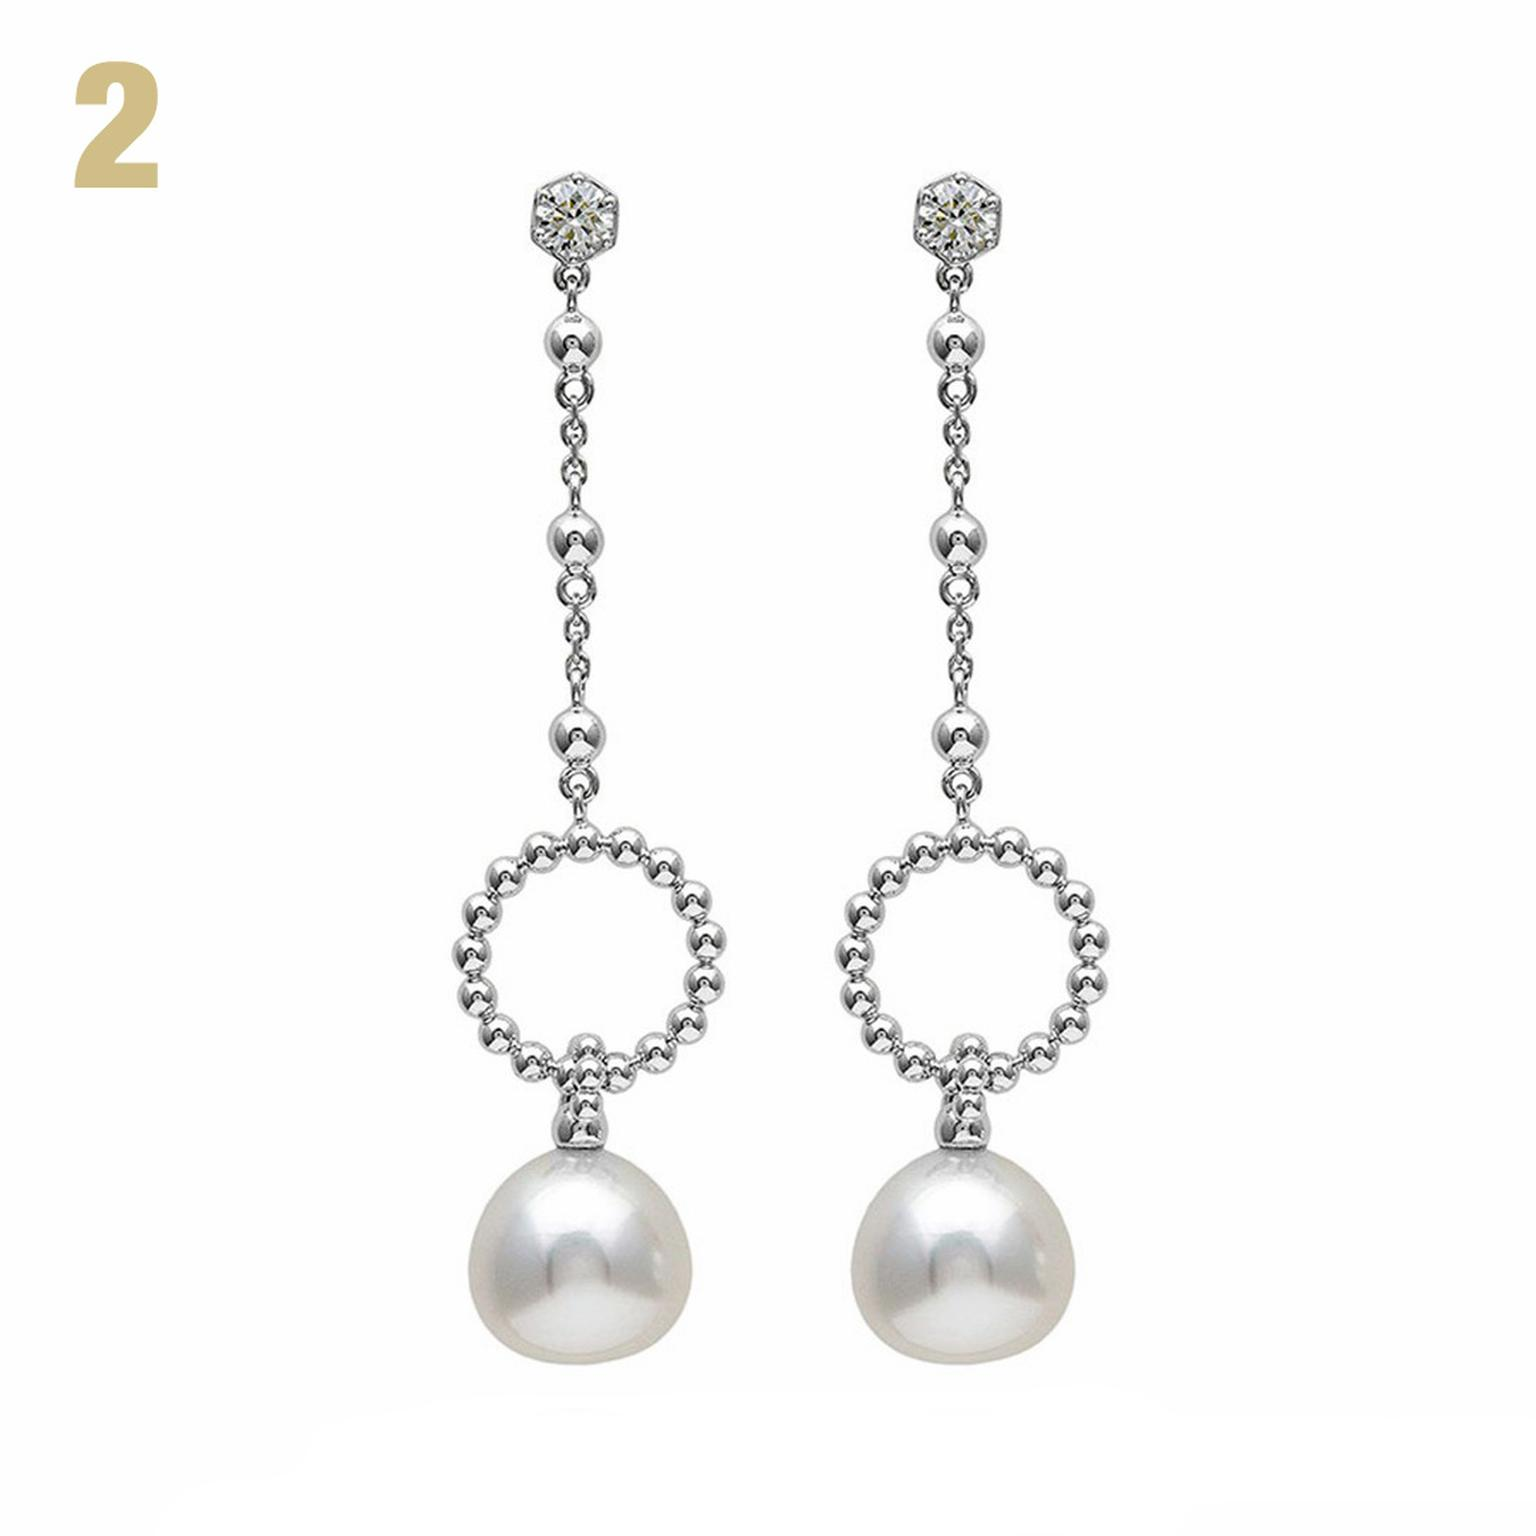 Circus pearl drop earrings with diamonds Boodles